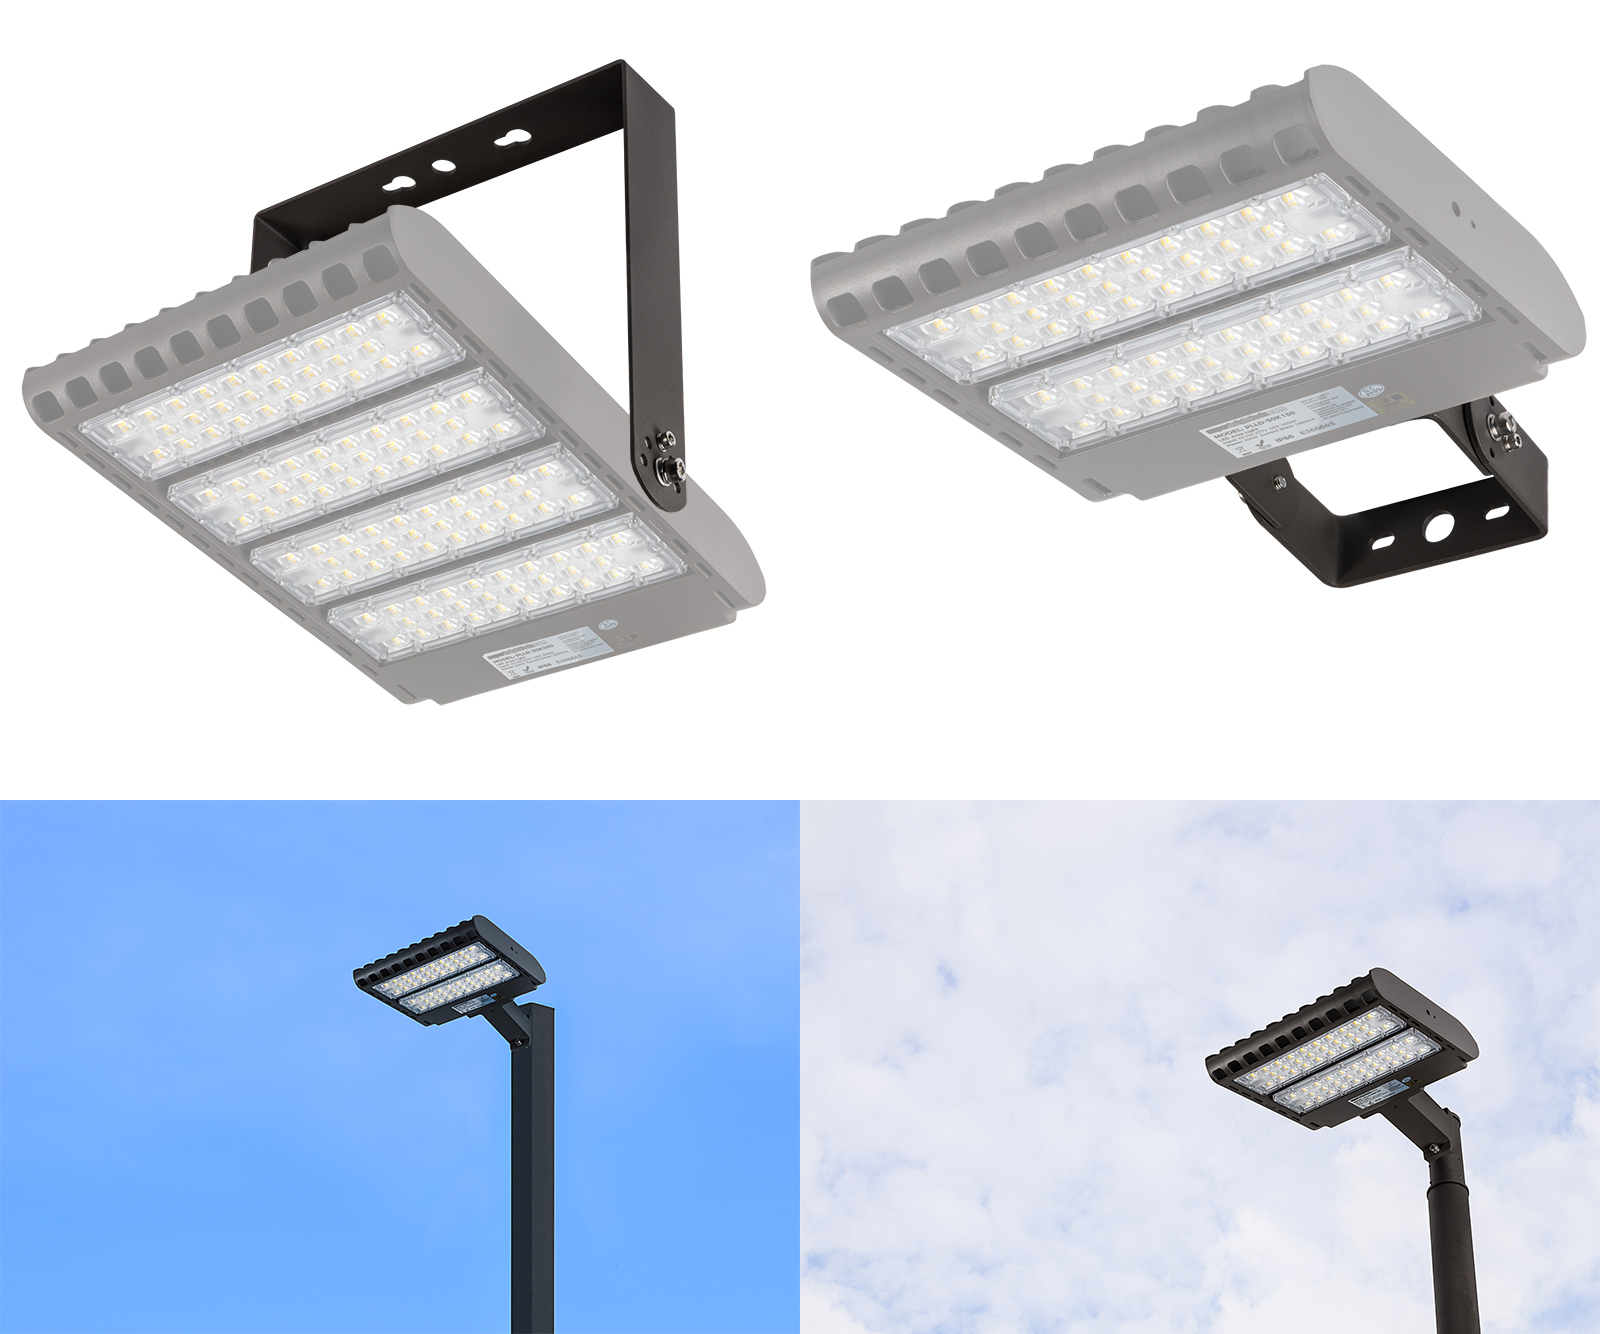 Led Light Fixtures For Parking Garages: LED Parking Lot Lights/Area Lights: Bright, Dependable